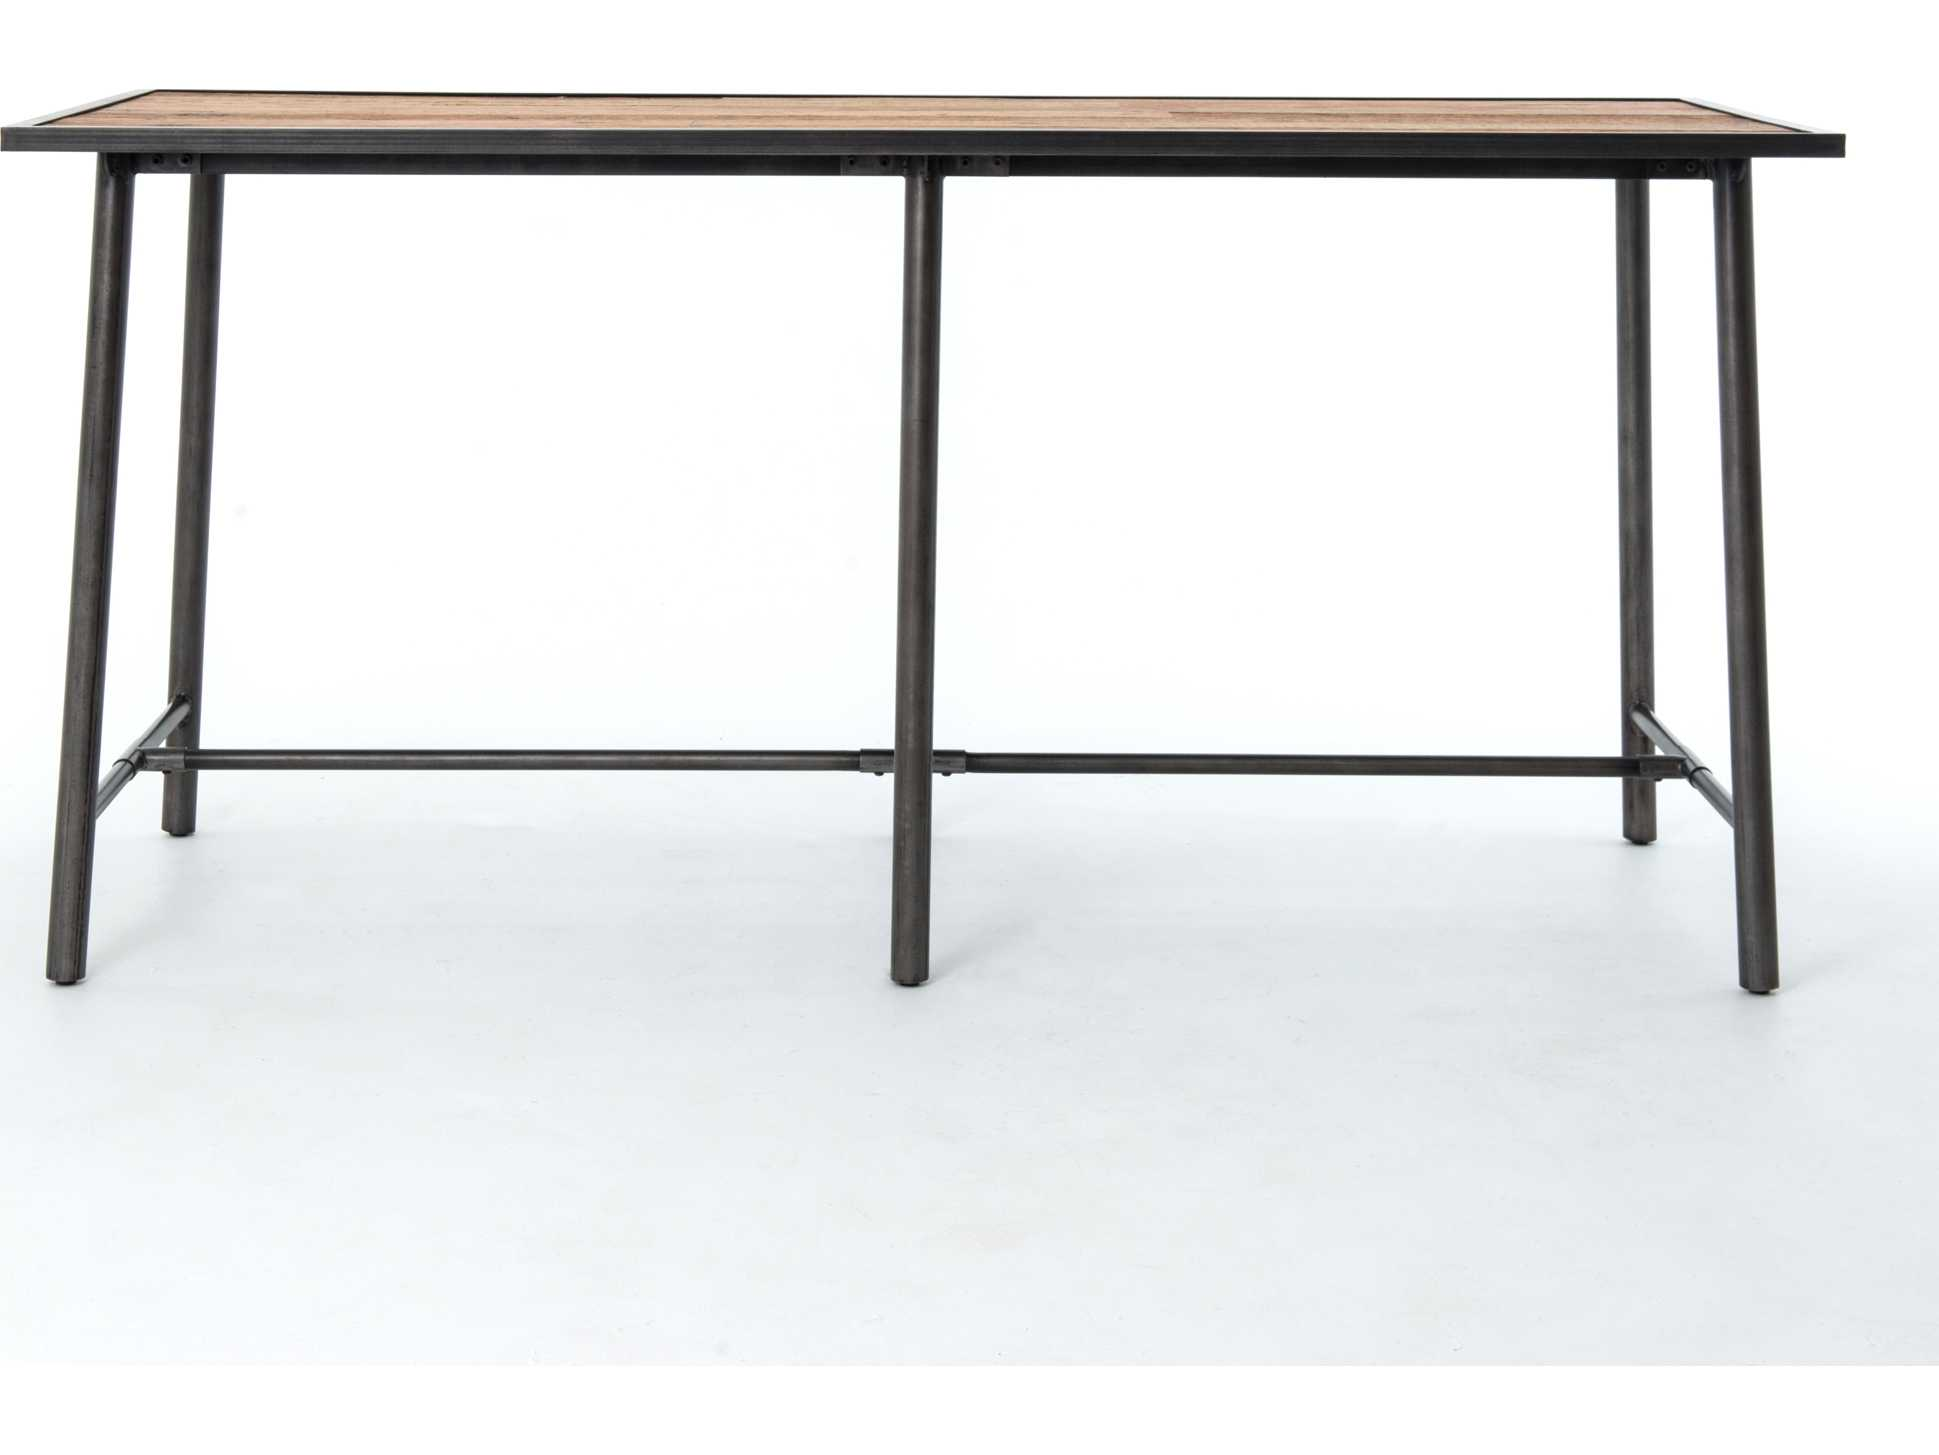 Four Hands Irondale Washed Old Oak 86 5 X 35 75 Rectangular Duke Bar Table